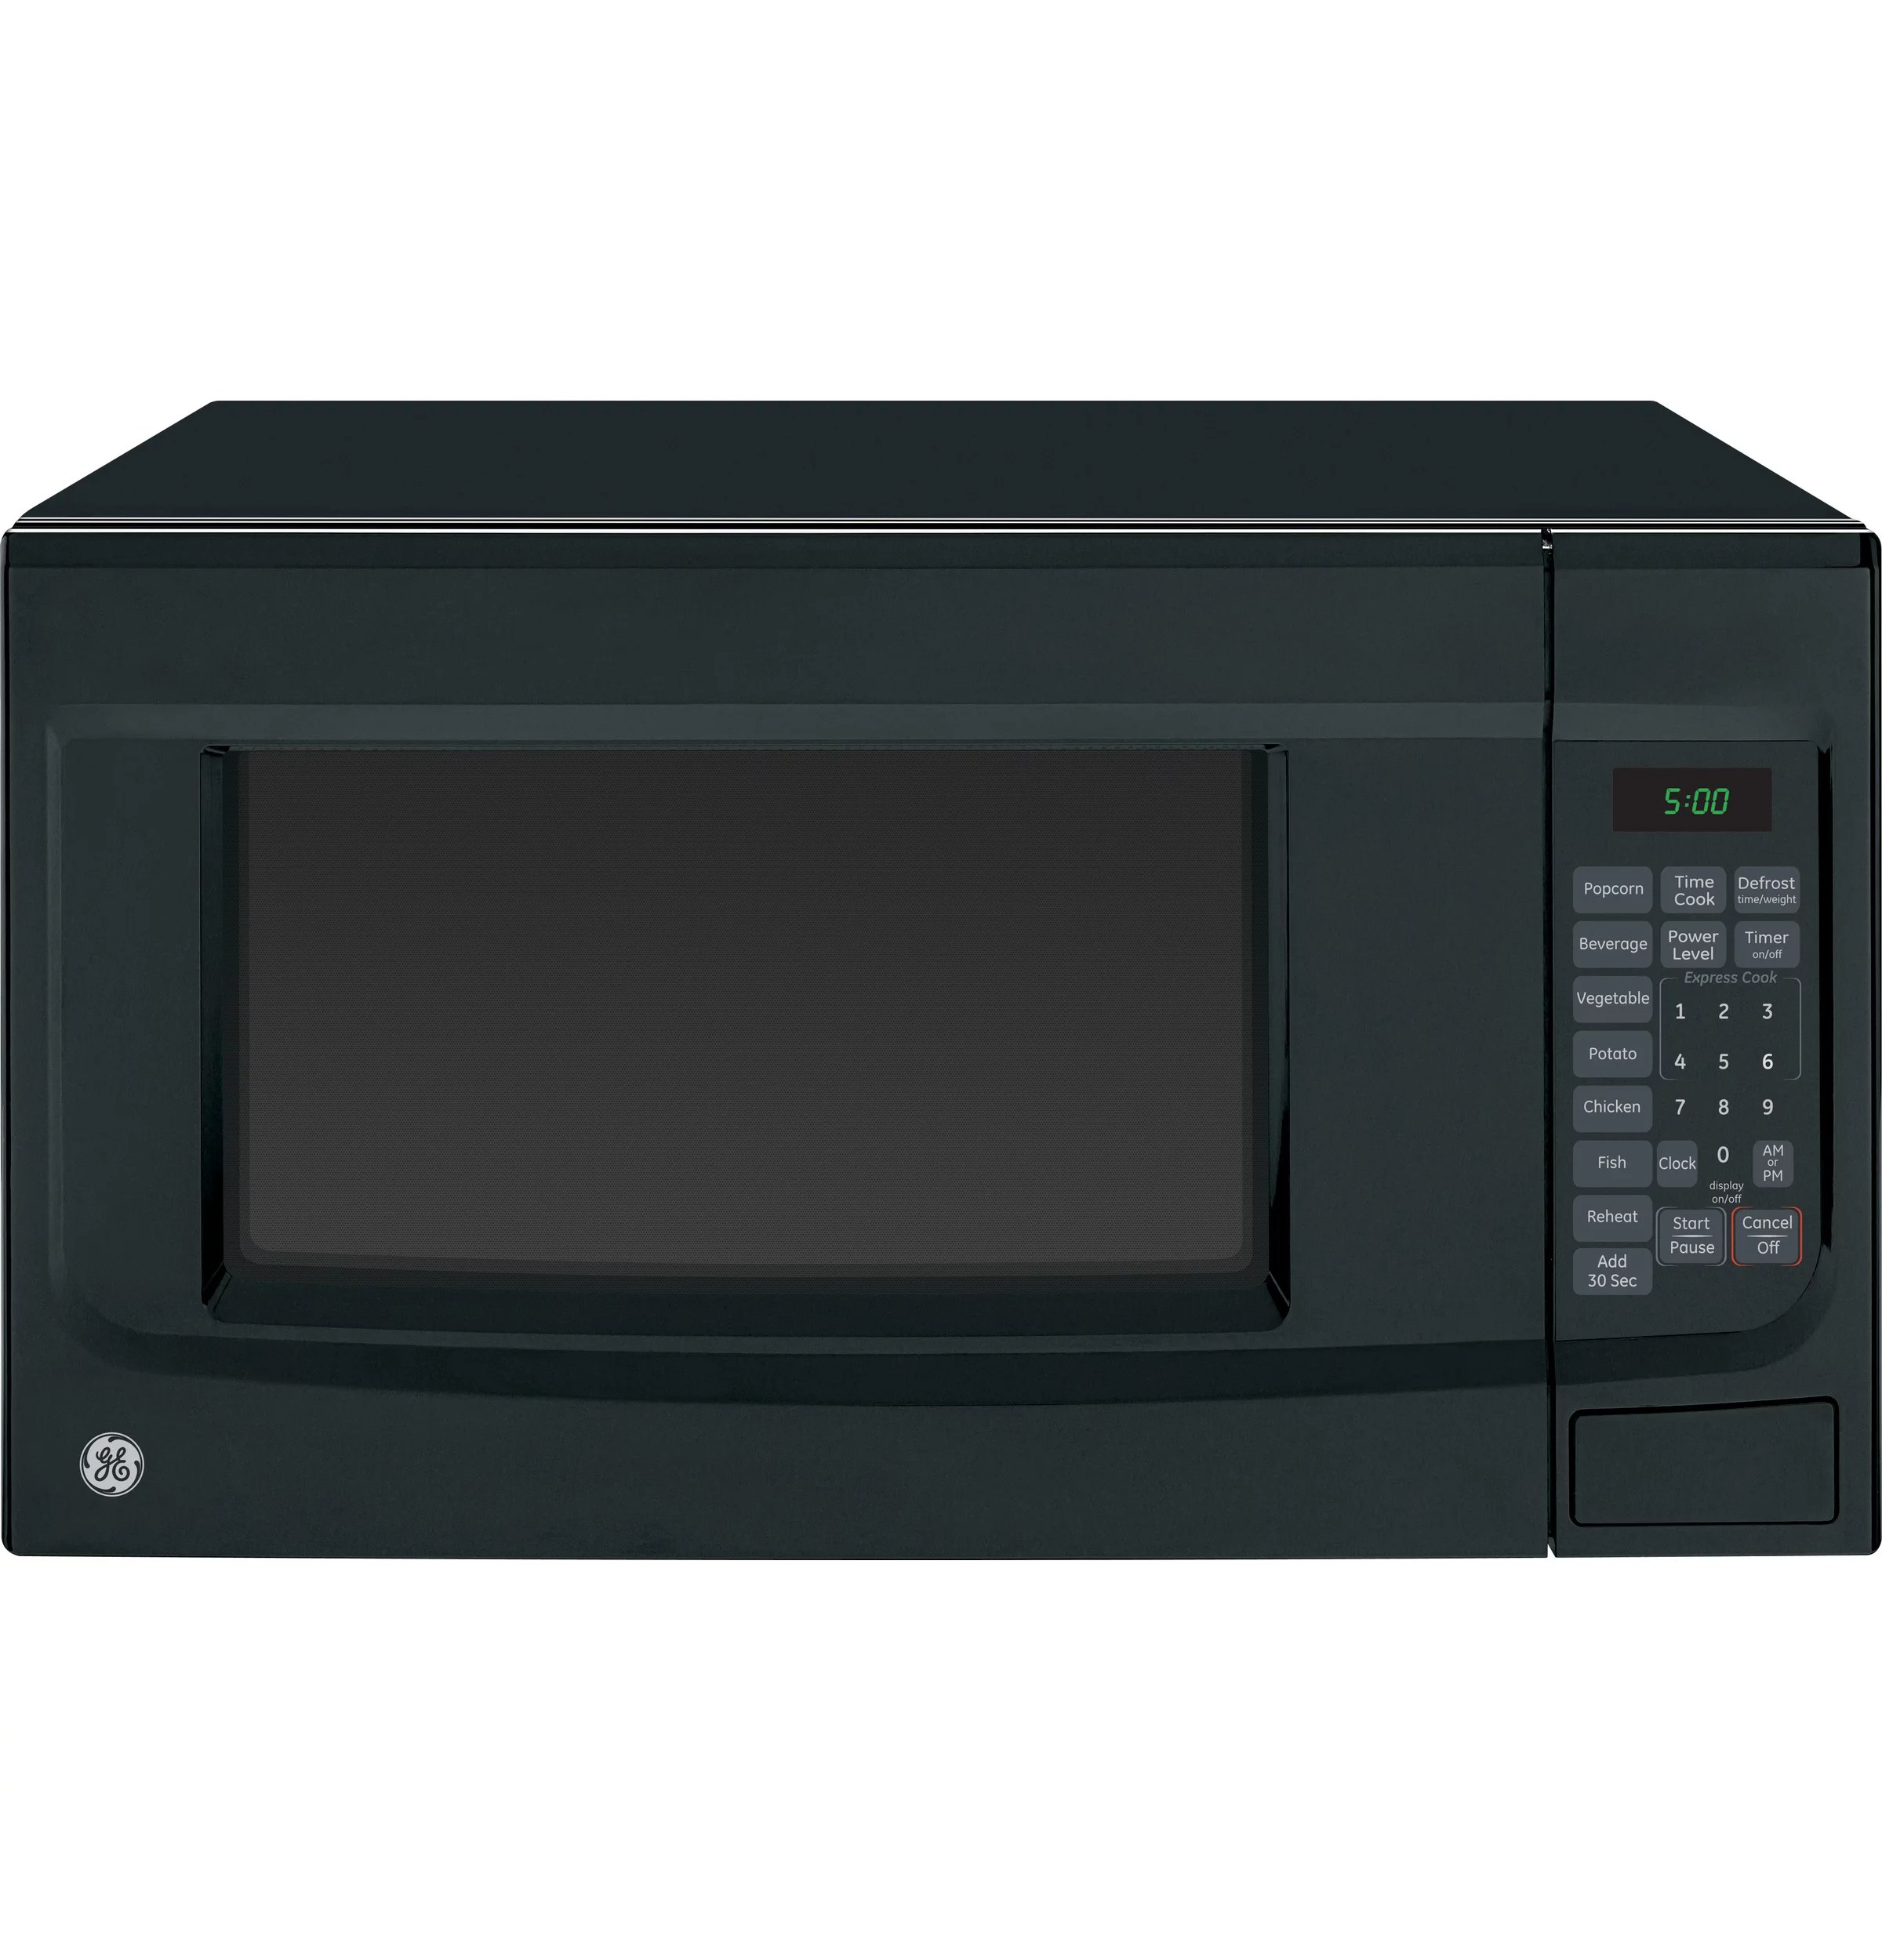 ge appliances 1 4 cubic foot countertop microwave oven black